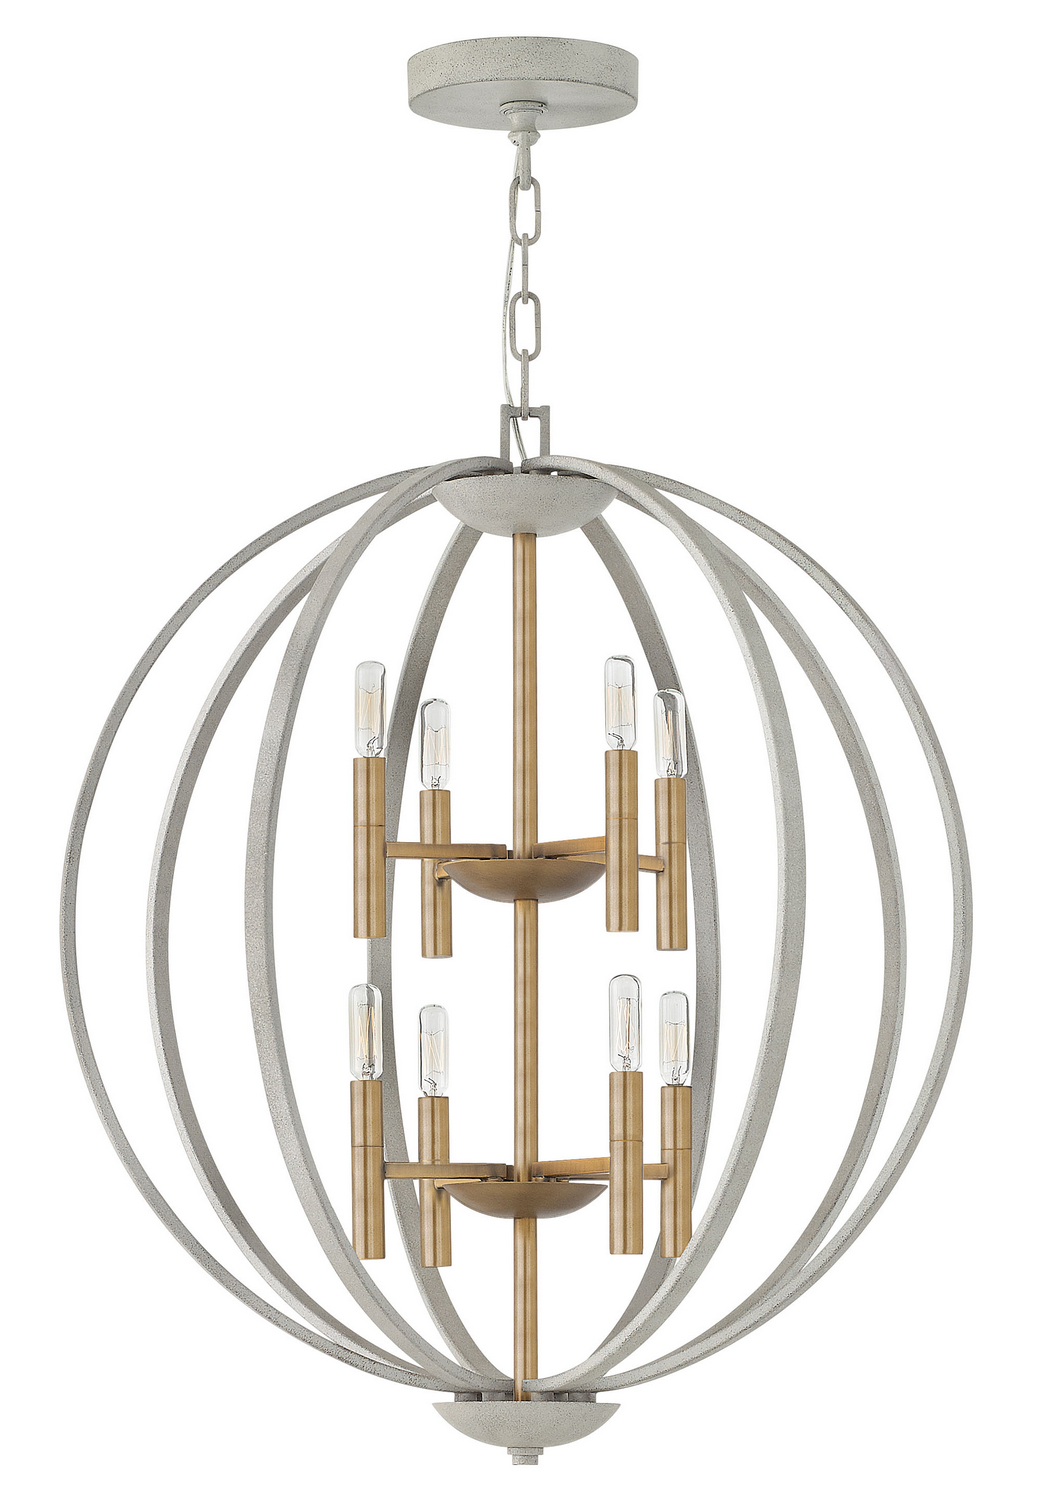 Eight Light Foyer Pendant from the Euclid collection by Hinkley 3468CG